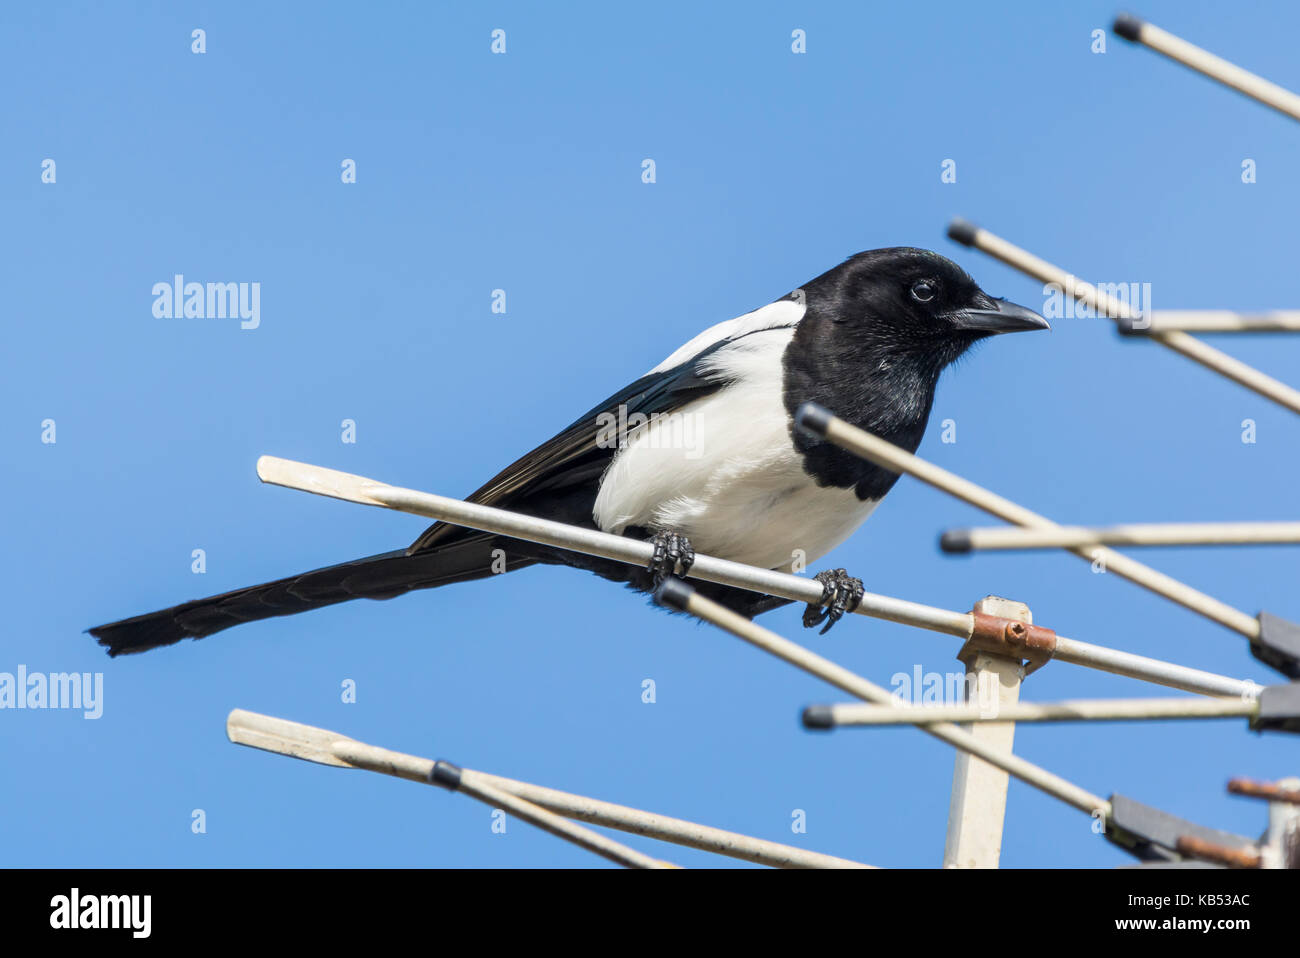 Eurasian Magpie bird (Pica pica) perched on a TV aerial in West Sussex, England, UK. - Stock Image